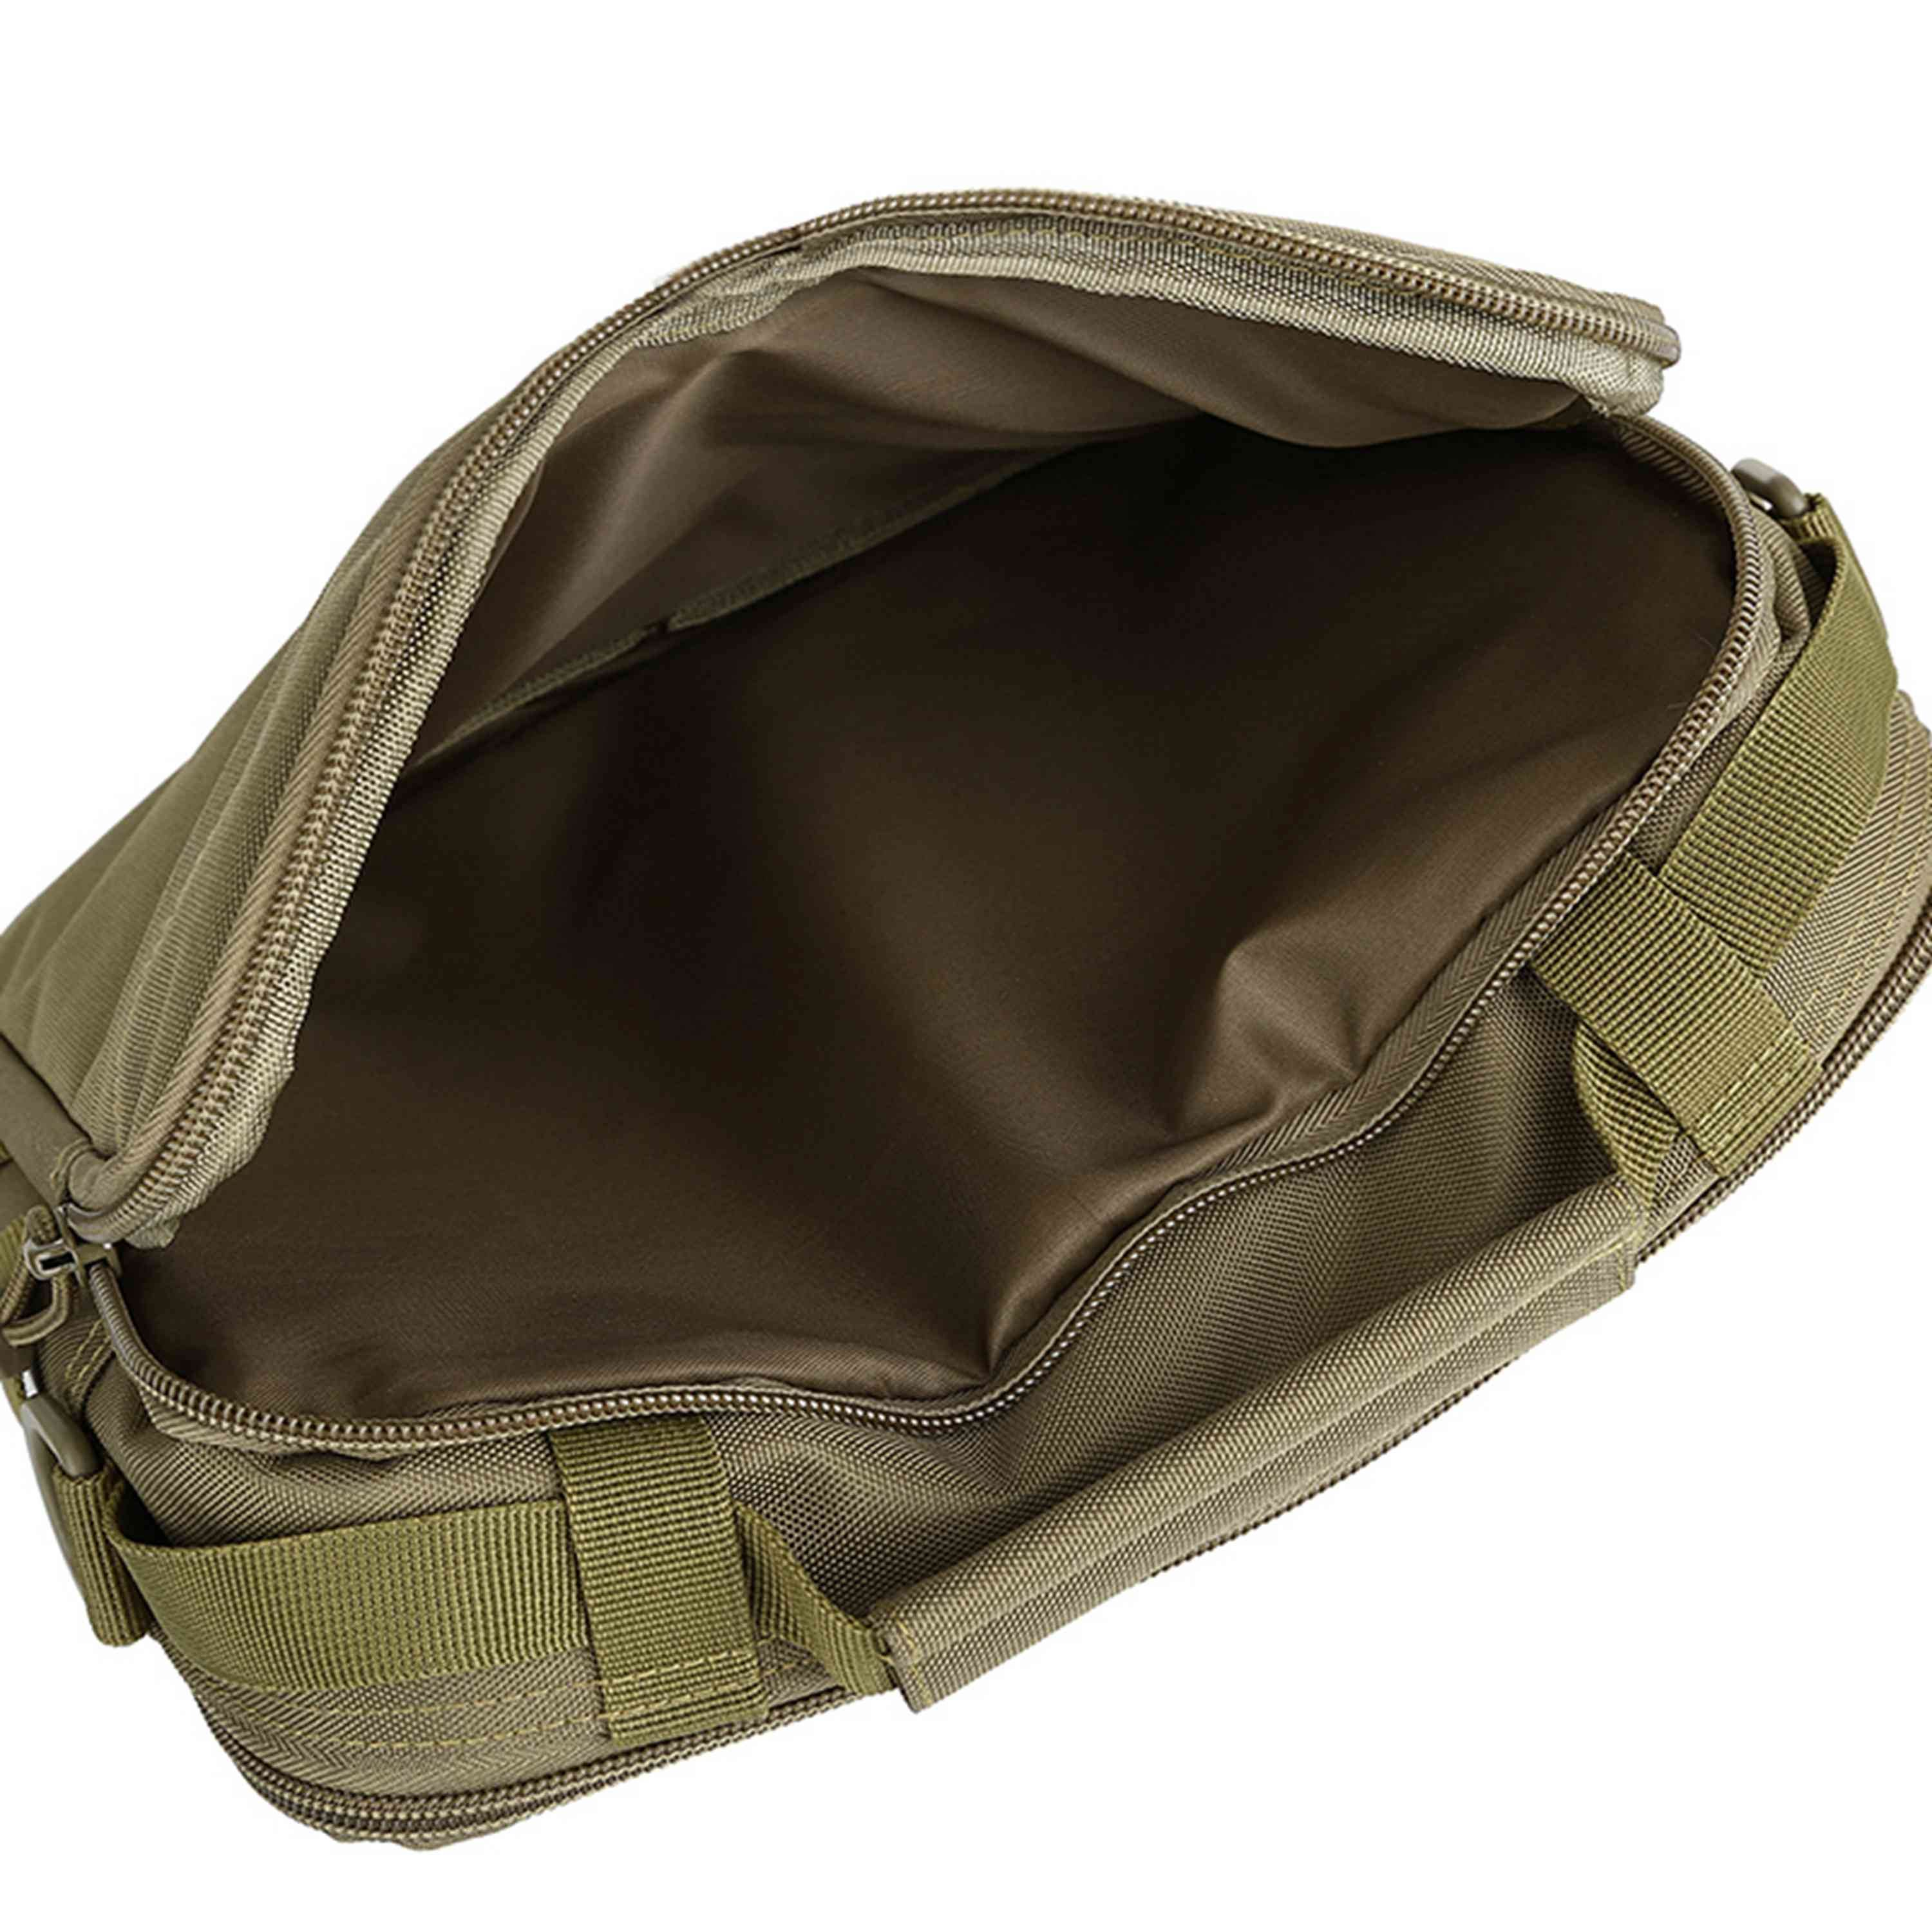 Ericdress Shoulder Bag Male Oxford Army Bags